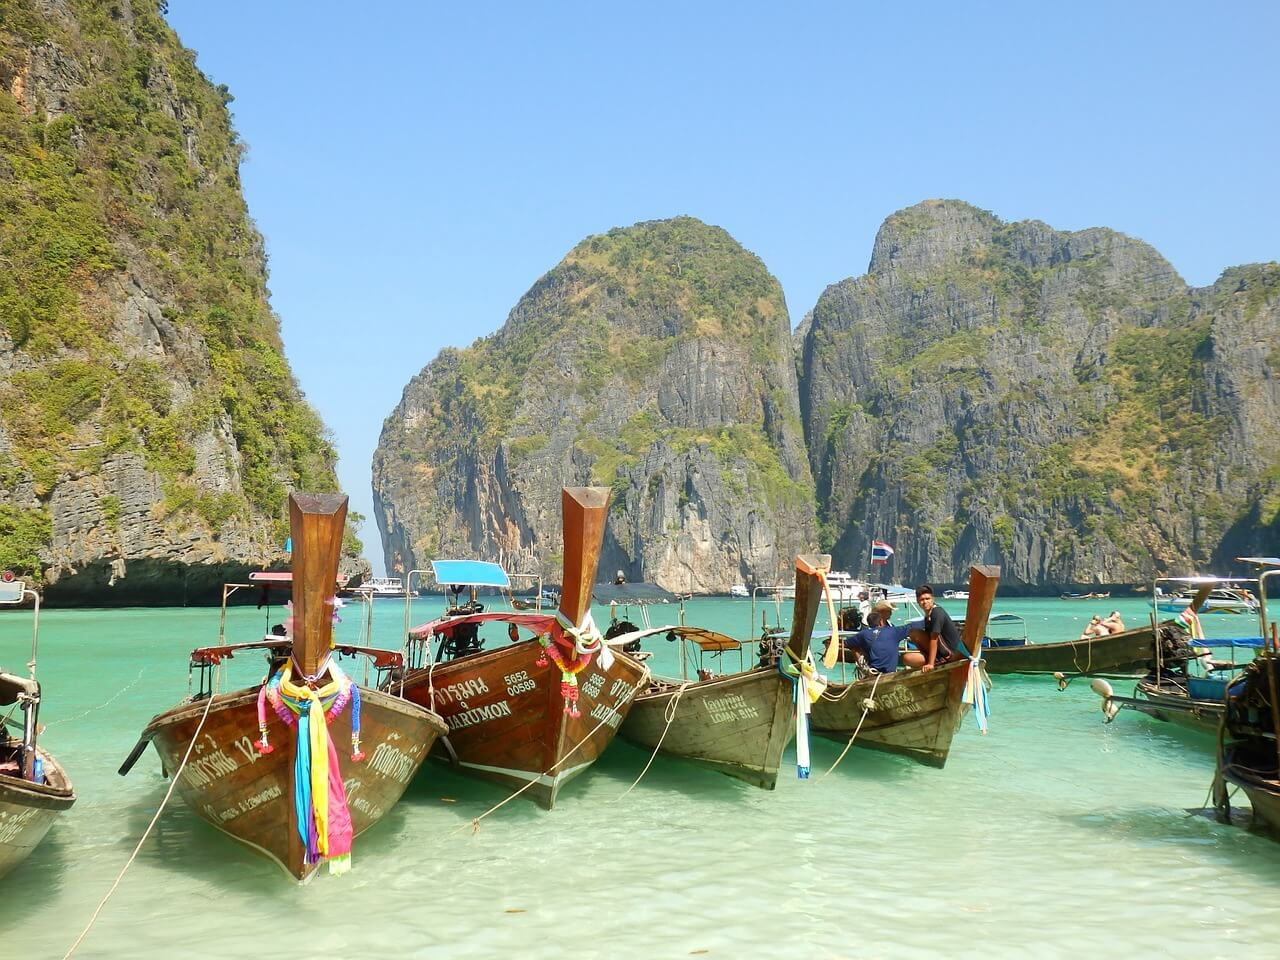 storyv.com - Riya Sander - 6 Best Beaches & Party Islands In Thailand For Young Travelers!